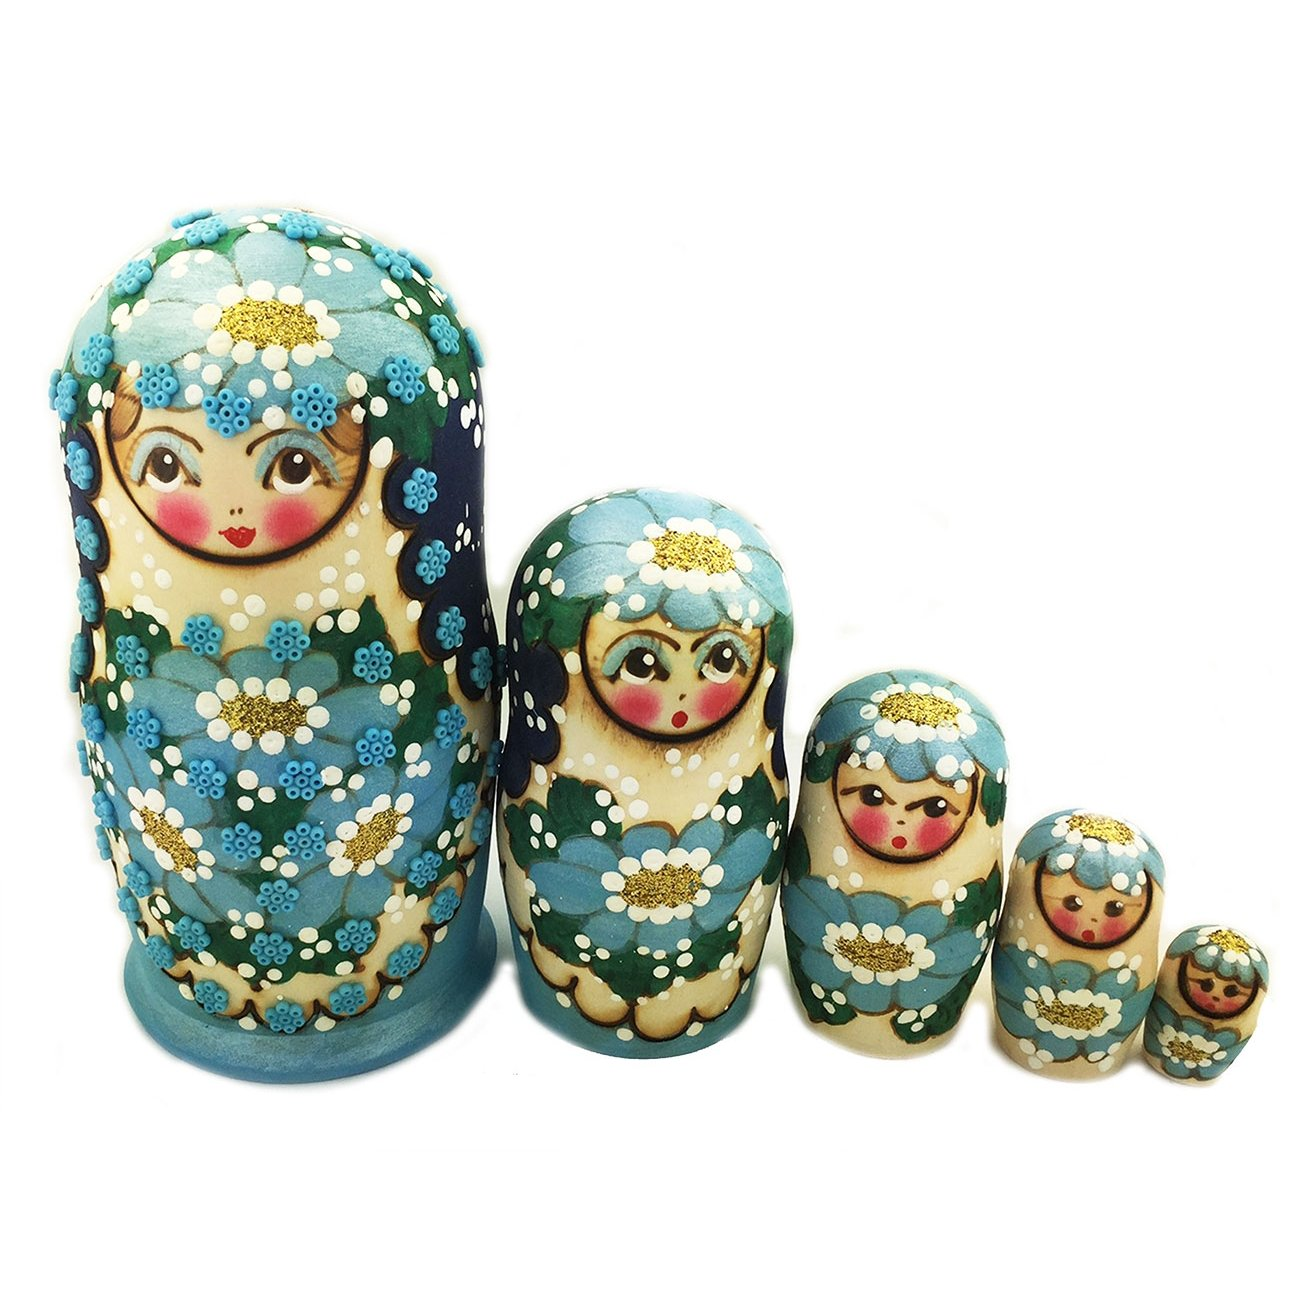 Blue NEW Beaded Matreshka 5 Nested Linden Wood Hand Carved Hand Painted Nesting Doll 5 1//2 Inch